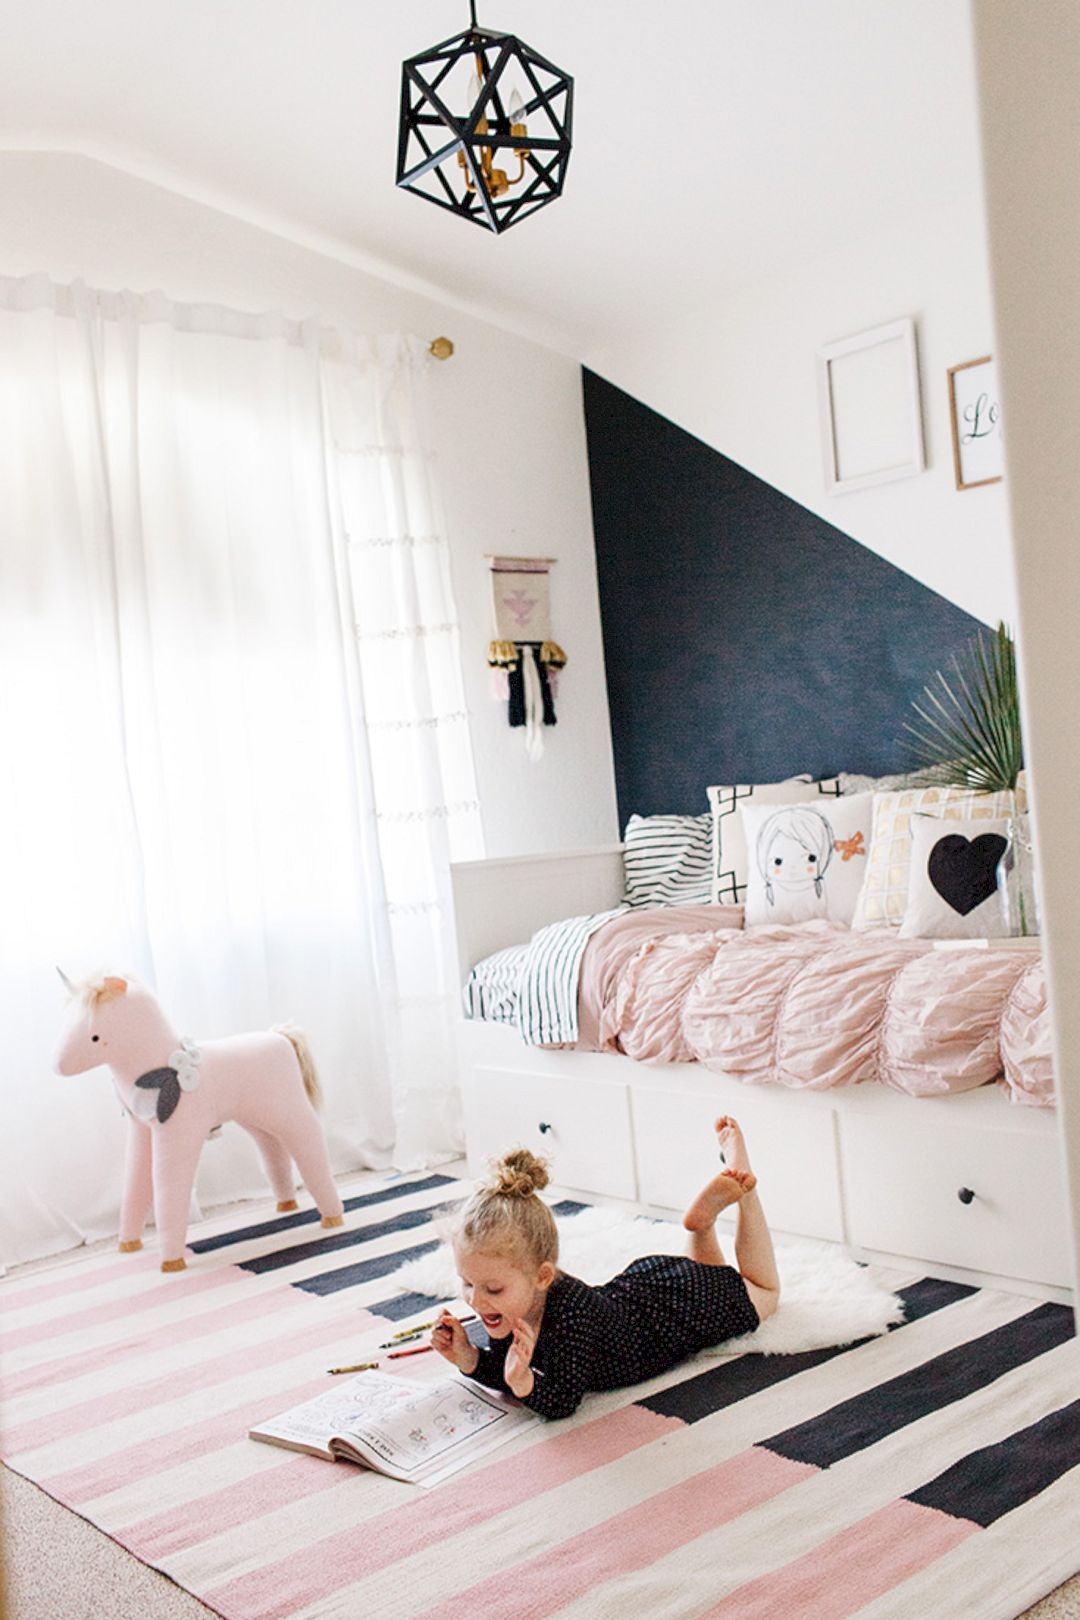 82 Wonderful Kid's Bedroom Decor Ideas | Pinterest | Kids s ... on fall kitchen, pink bedroom, lighting ideas bedroom, green paint bedroom, window treatments bedroom, orange bedroom, red bedroom, design ideas bedroom, home decor ideas bedroom, ikea ideas bedroom, organization ideas bedroom, fall room decor, diy ideas bedroom, fall inspired bedrooms, halloween bedroom, ikat bedroom, aqua bedroom, thanksgiving bedroom, paint ideas bedroom, ottoman bedroom,